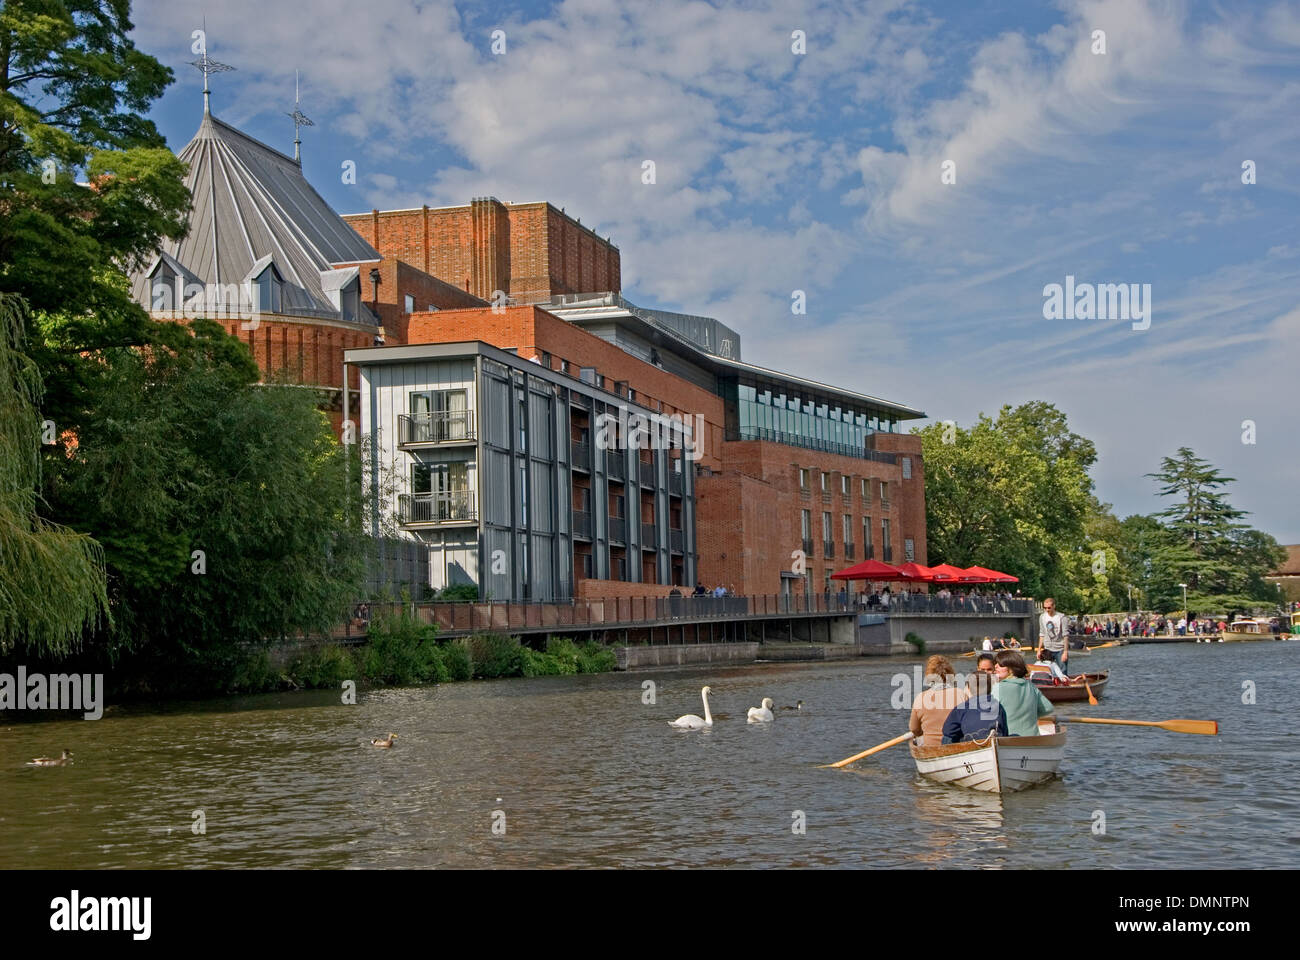 Stratford upon Avon and the Royal Shakespeare Theatre and rowing boats on the River Avon, Warwickshire. - Stock Image